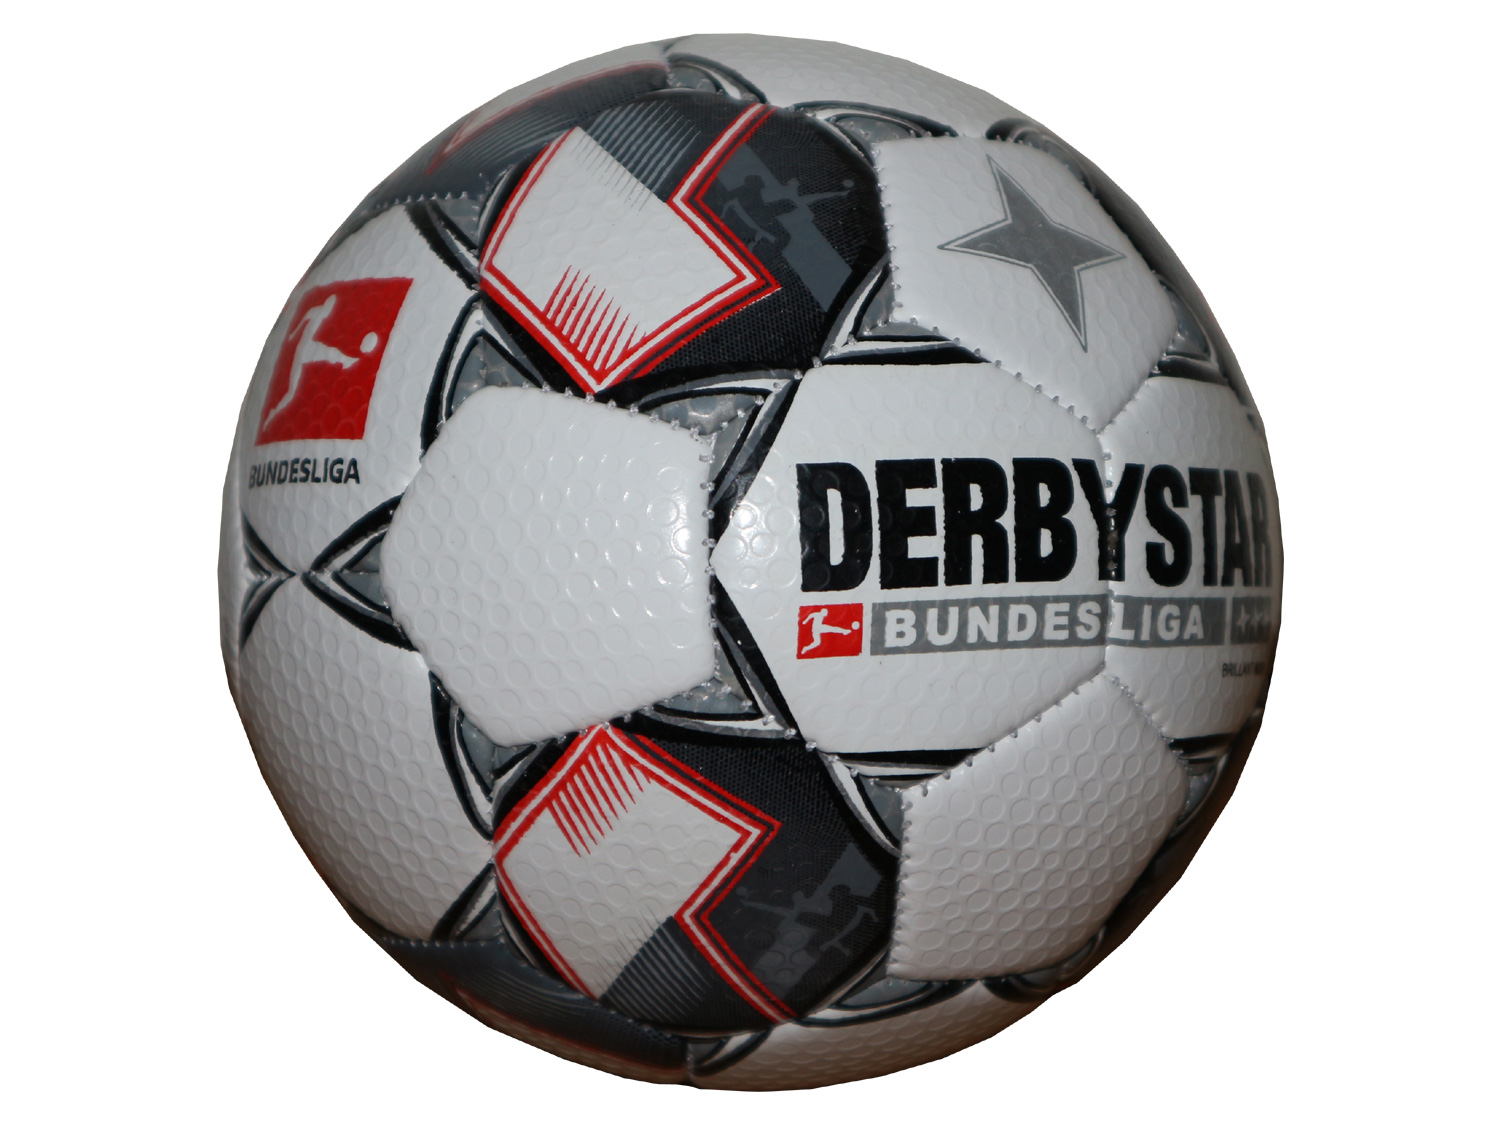 Derbystar Bundesliga Mini Fussball 18 19